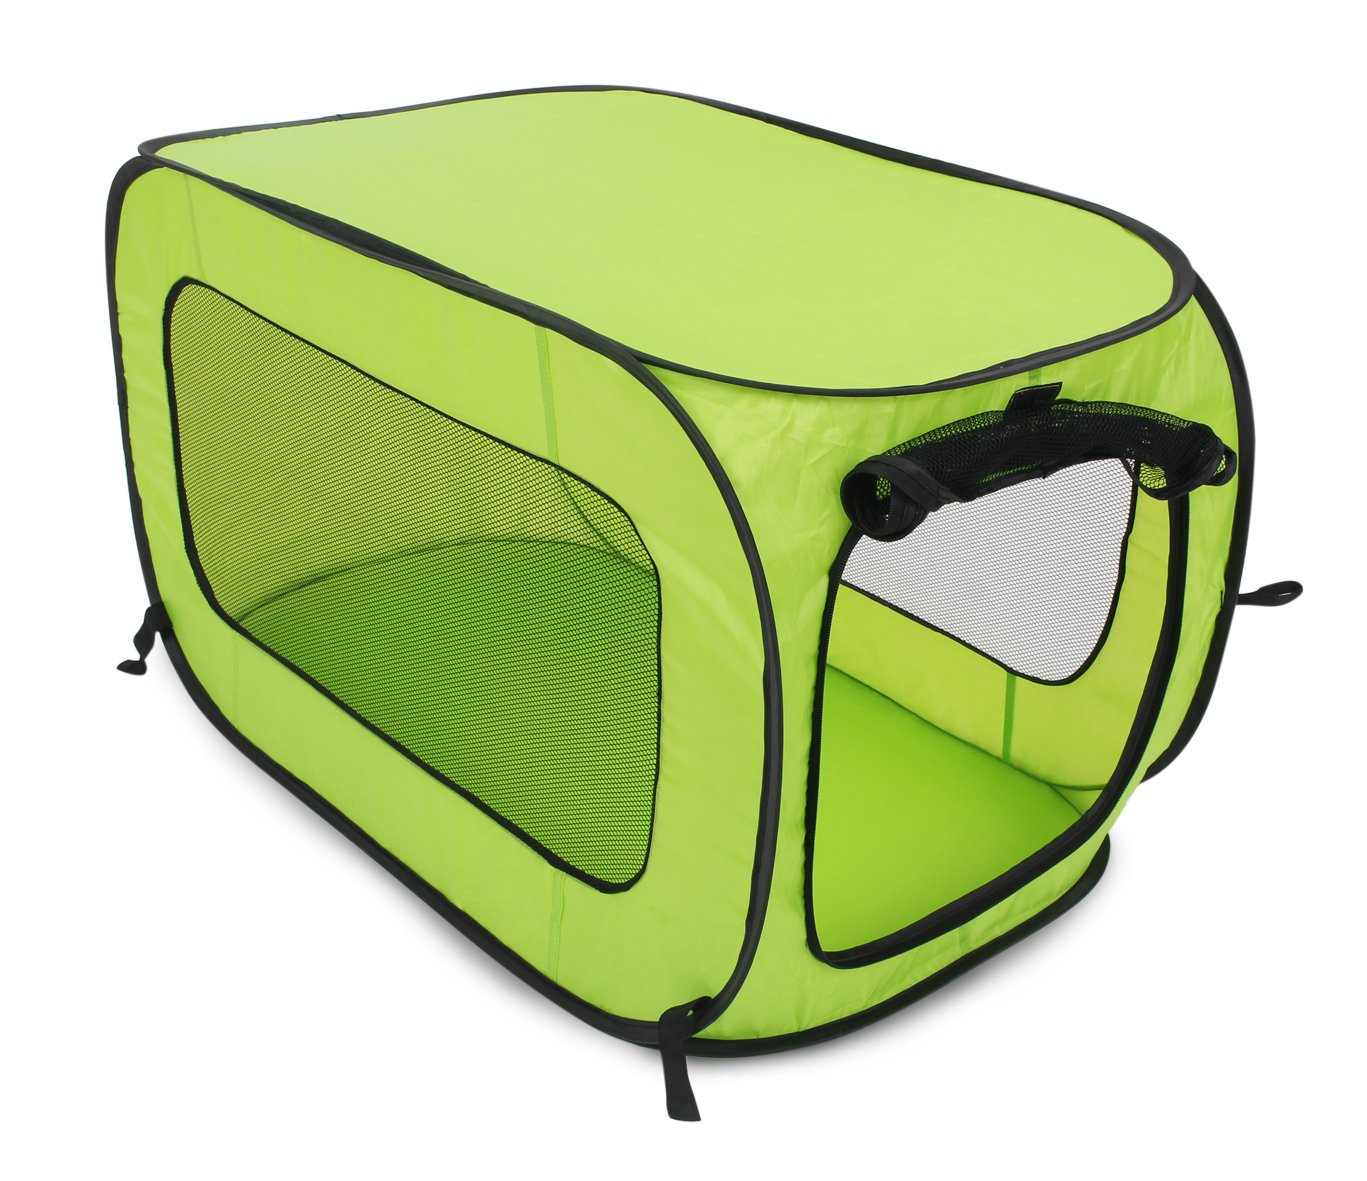 Beatrice Home Fashions SOLPPK00GRN POP UP PET KENNEL, Green